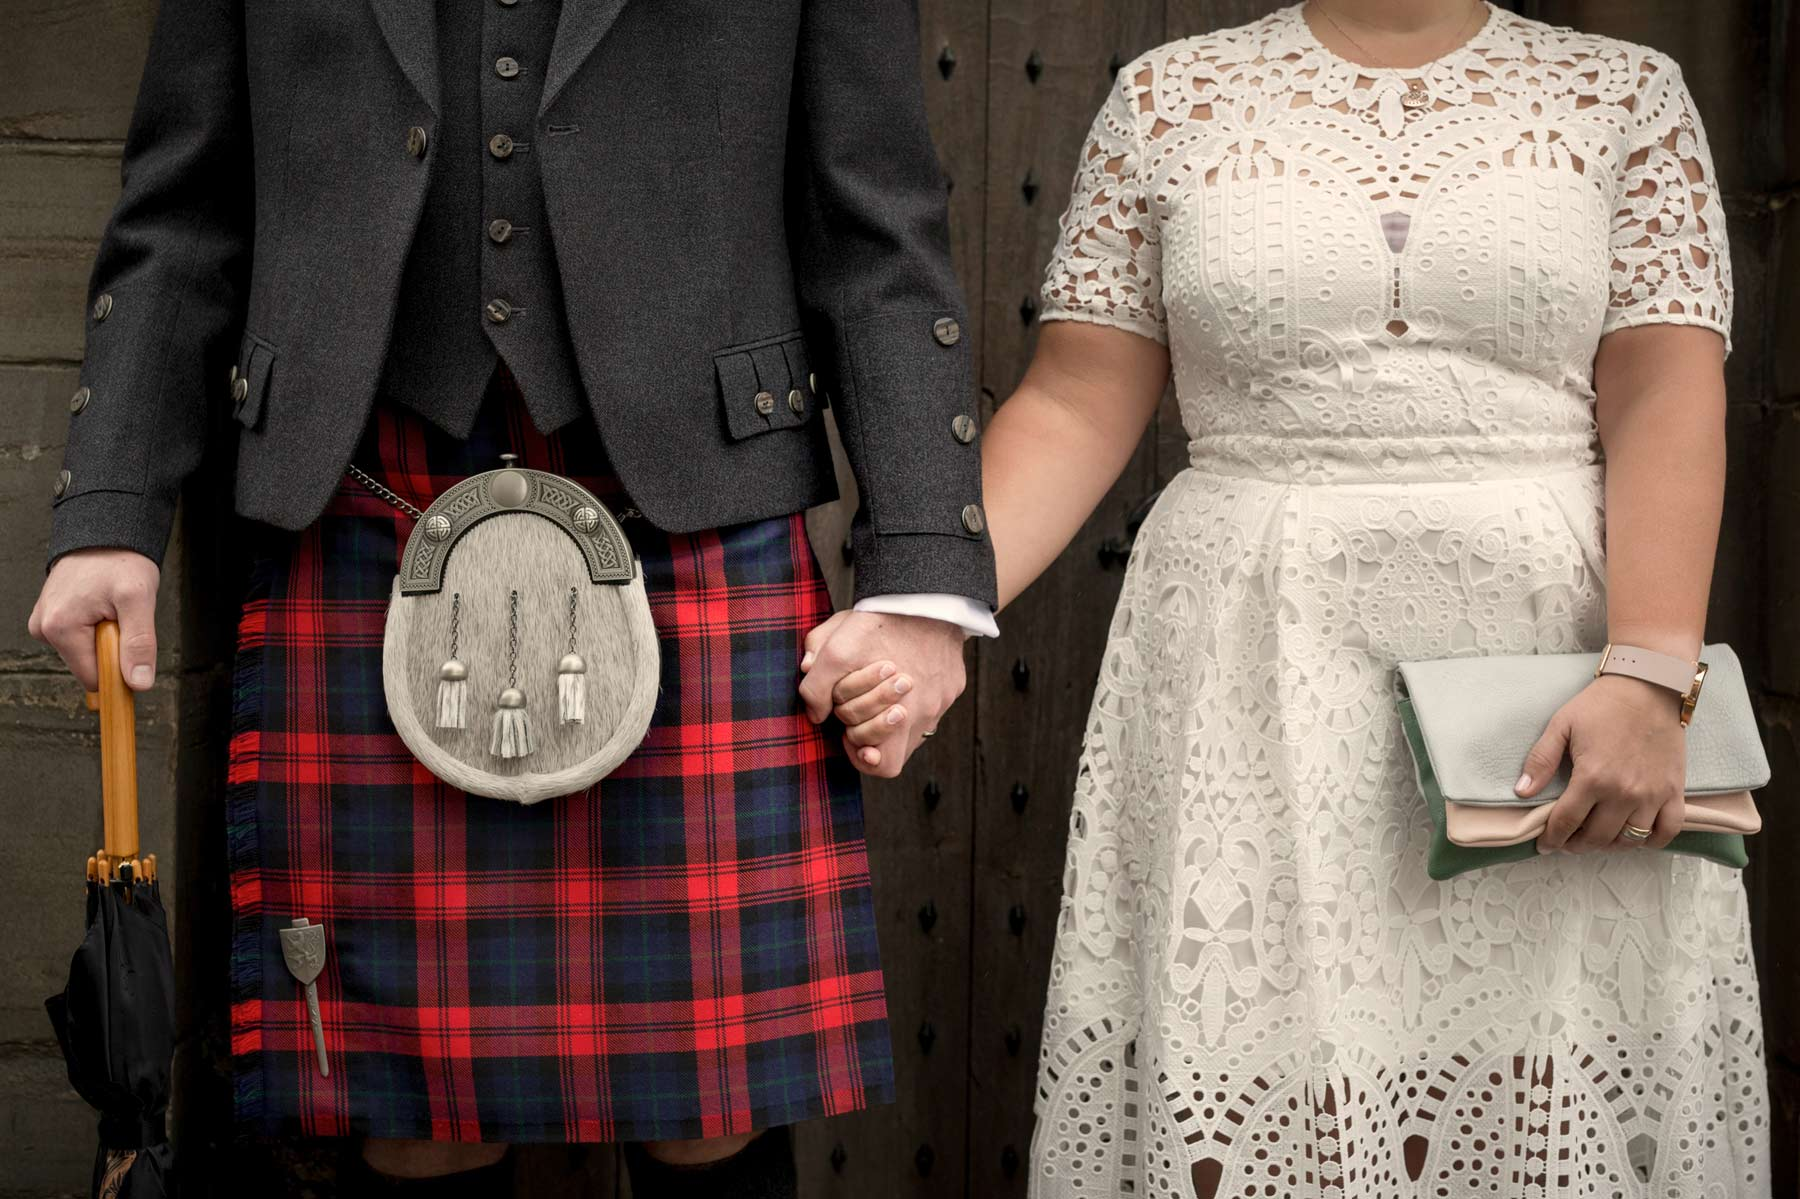 Bride, groom, wedding, portraits, photography, Edinburgh, Old Town, Scotland